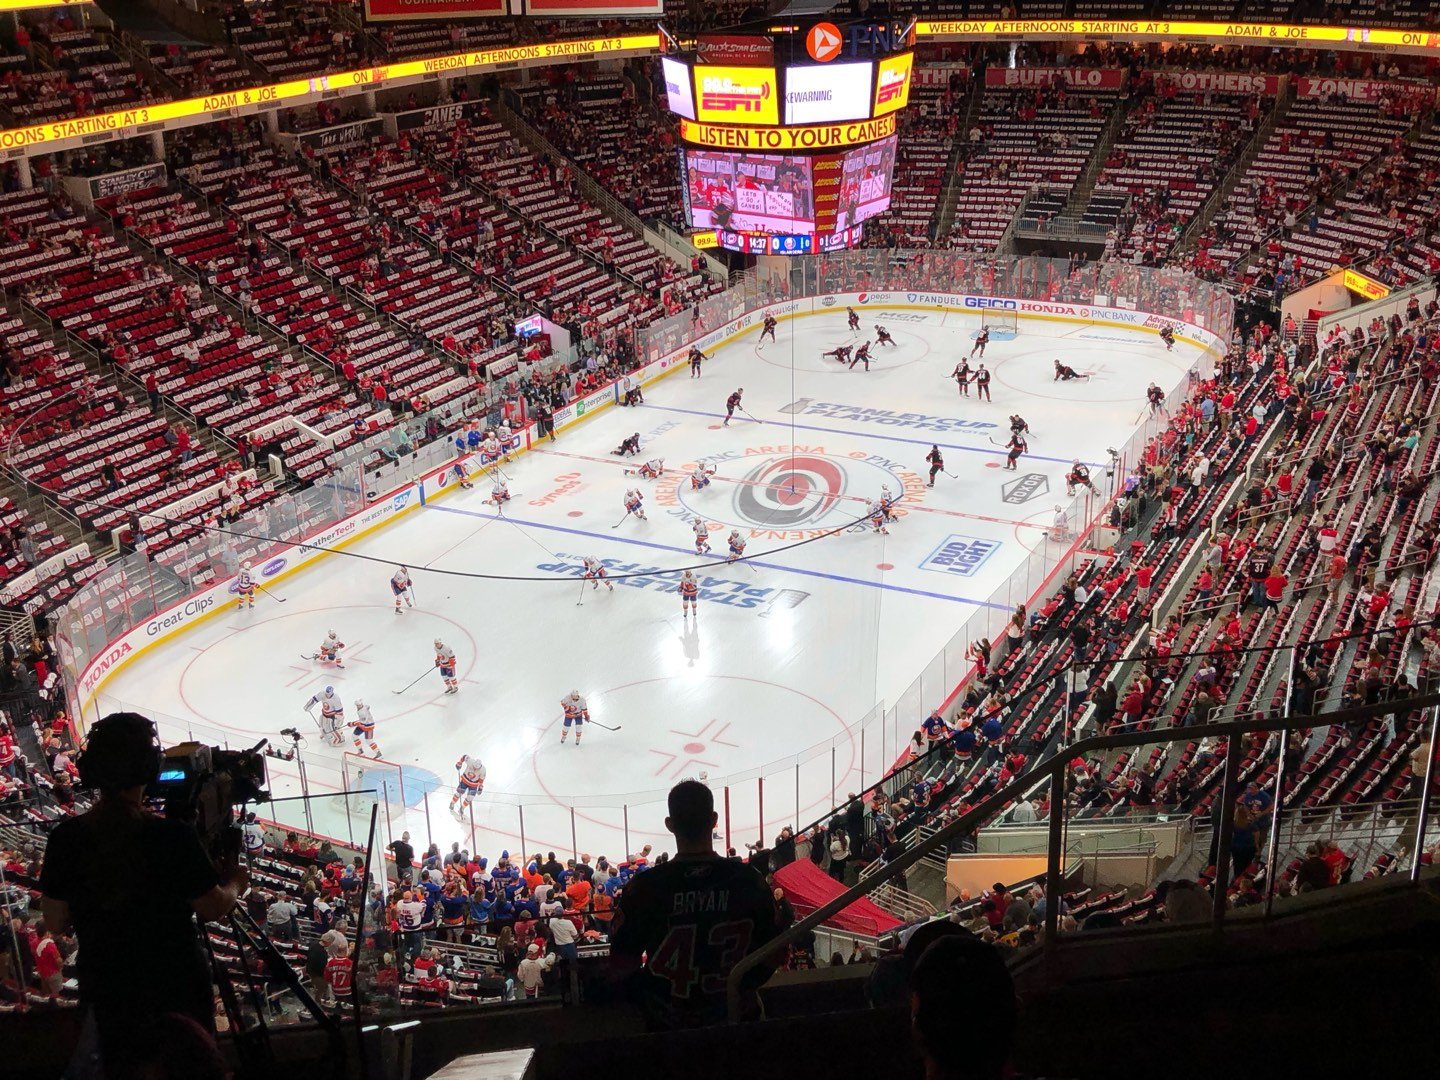 PNC Arena Section 331 Row G Seat 5